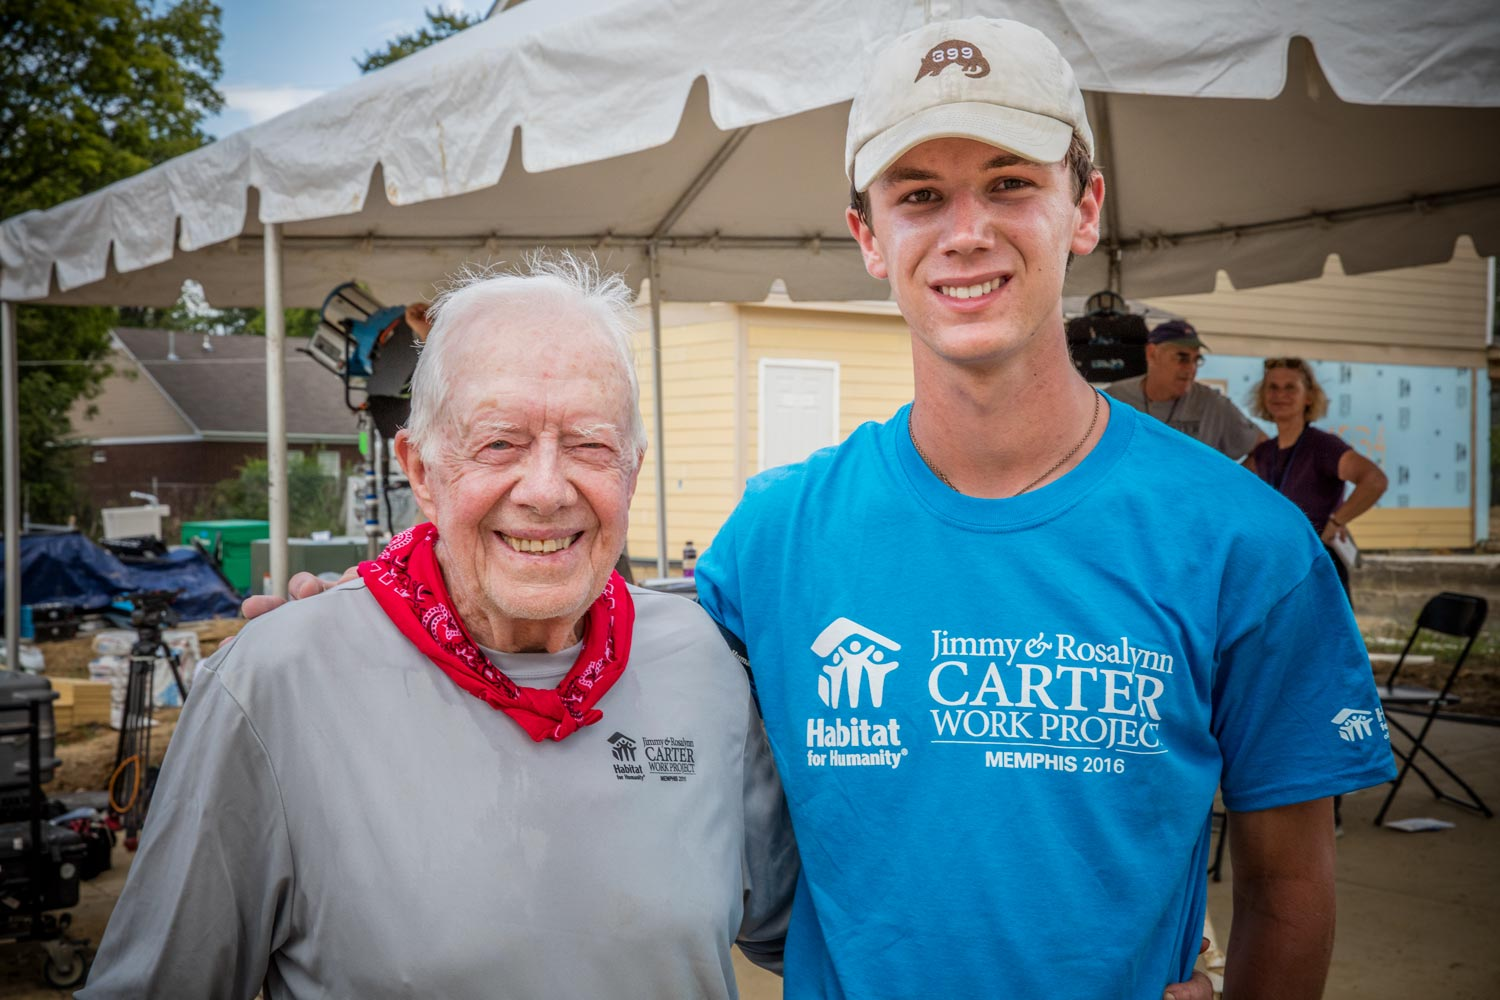 Thompson with former President Jimmy Carter, a longtime benefactor and volunteer with Habitat for Humanity.